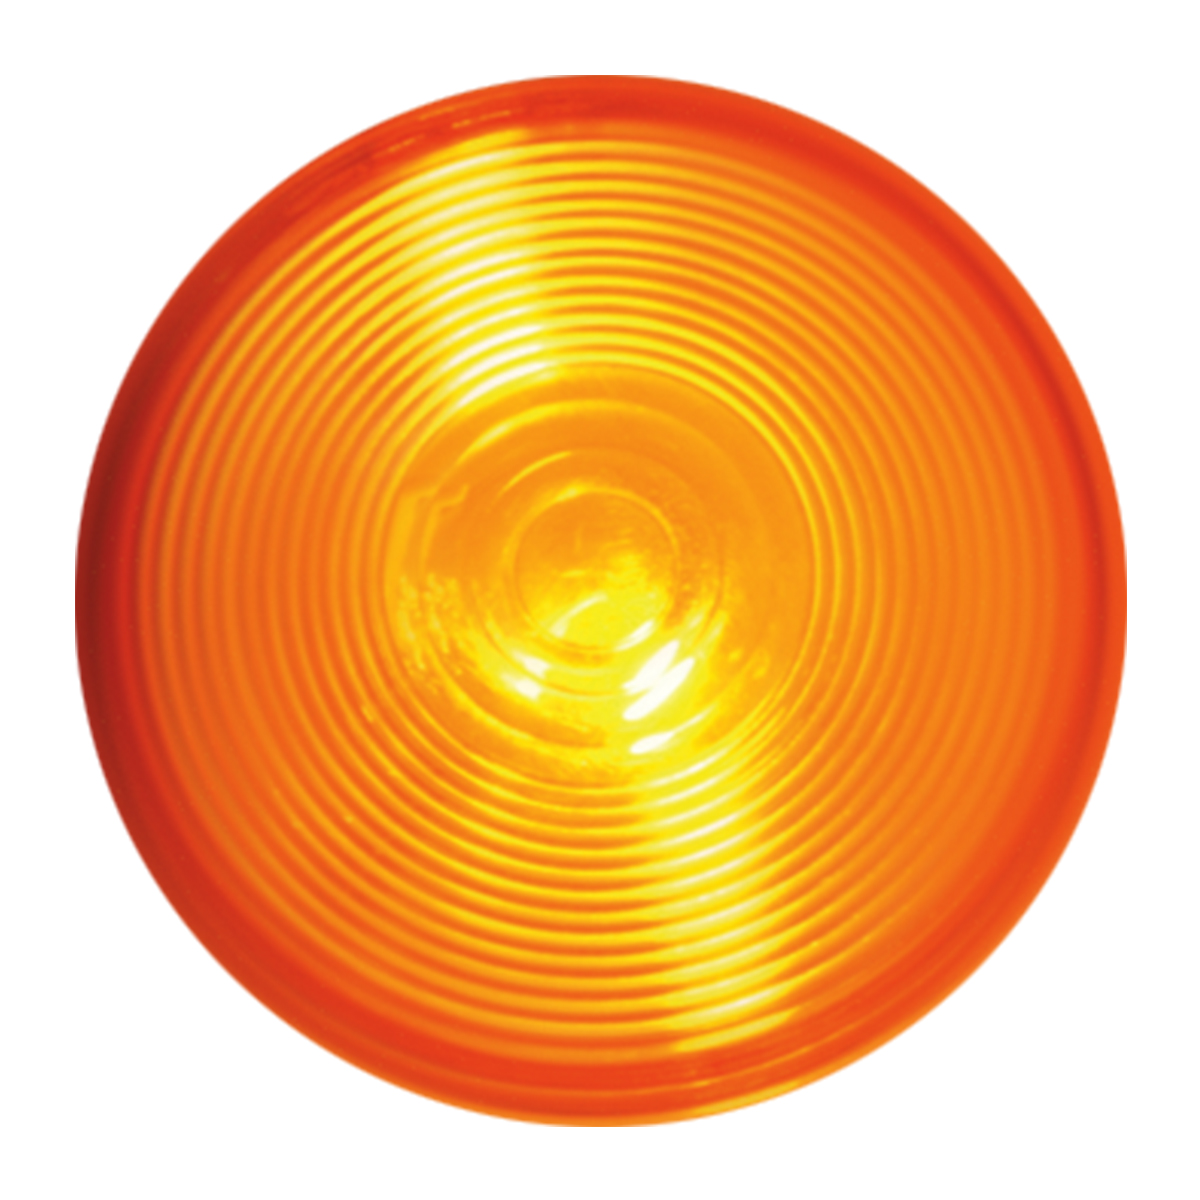 "#80476 4"" Round Incandescent Flat Amber/Amber Light"